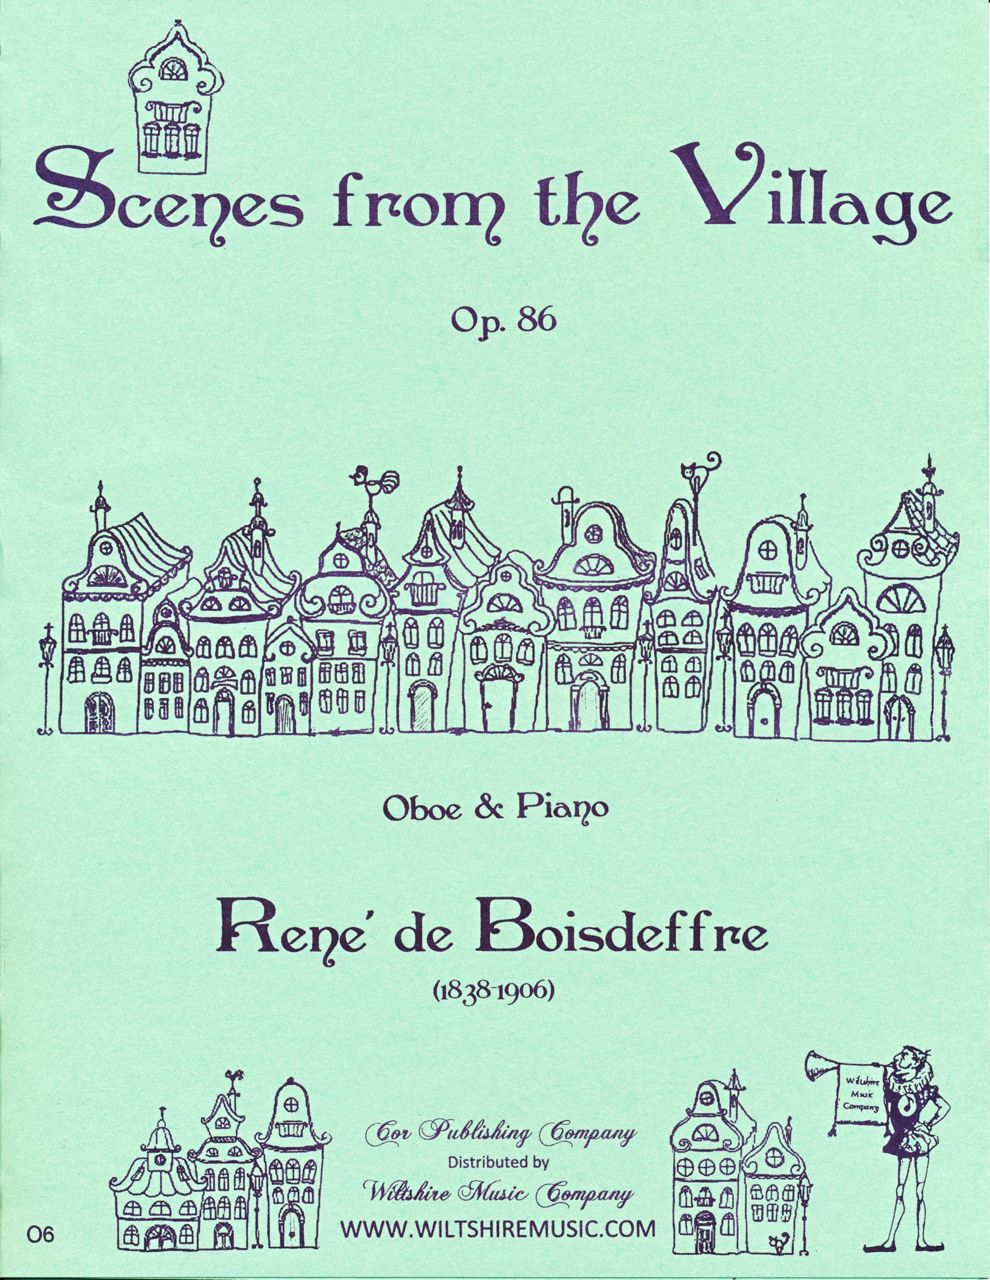 Scenes form the Village, Rene de Boisdeffre